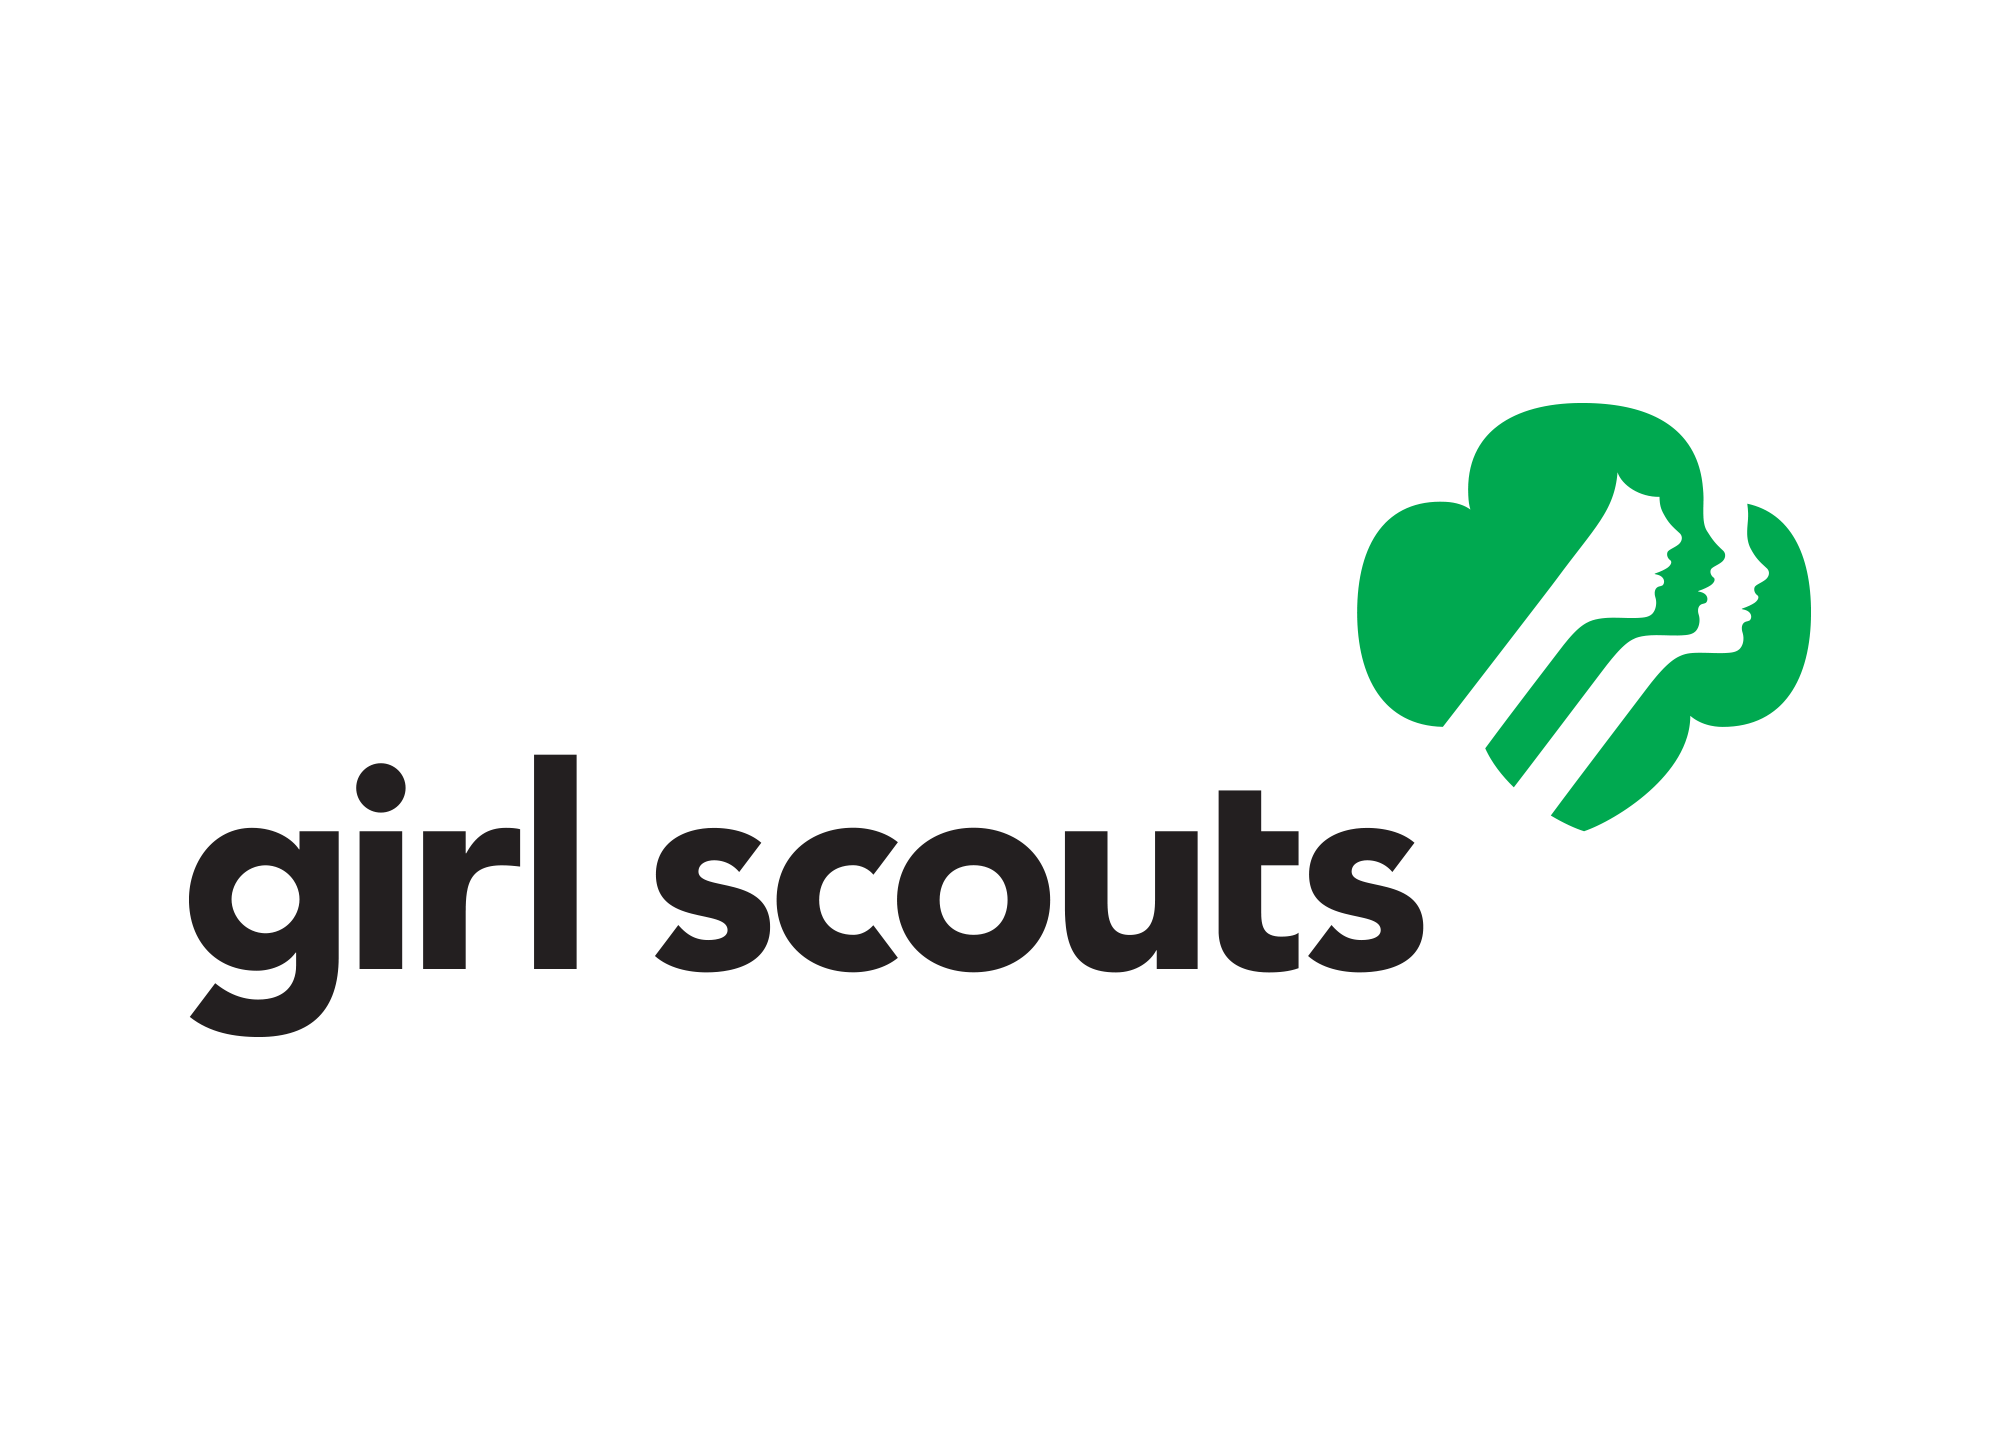 girl scouts_512556